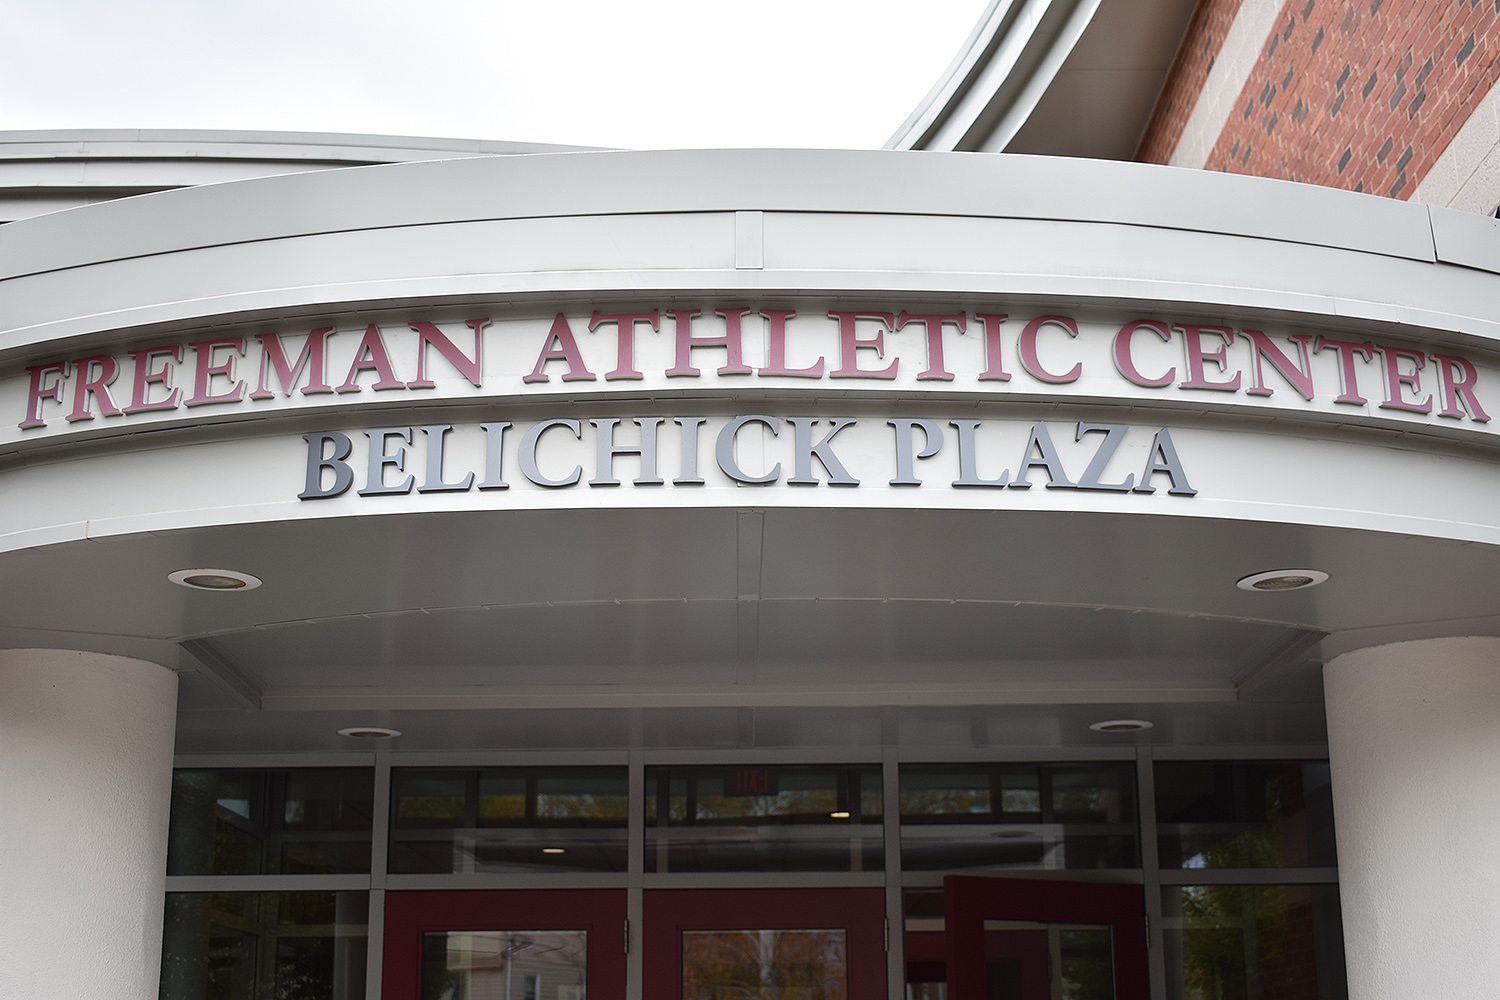 The Belichick Plaza, which houses Wesleyan's Athletics Hall of Fame, is located at the Warren Street entrance of the Freeman Athletic Center. Belichick himself was named to the Athletics Hall of Fame in 2008.